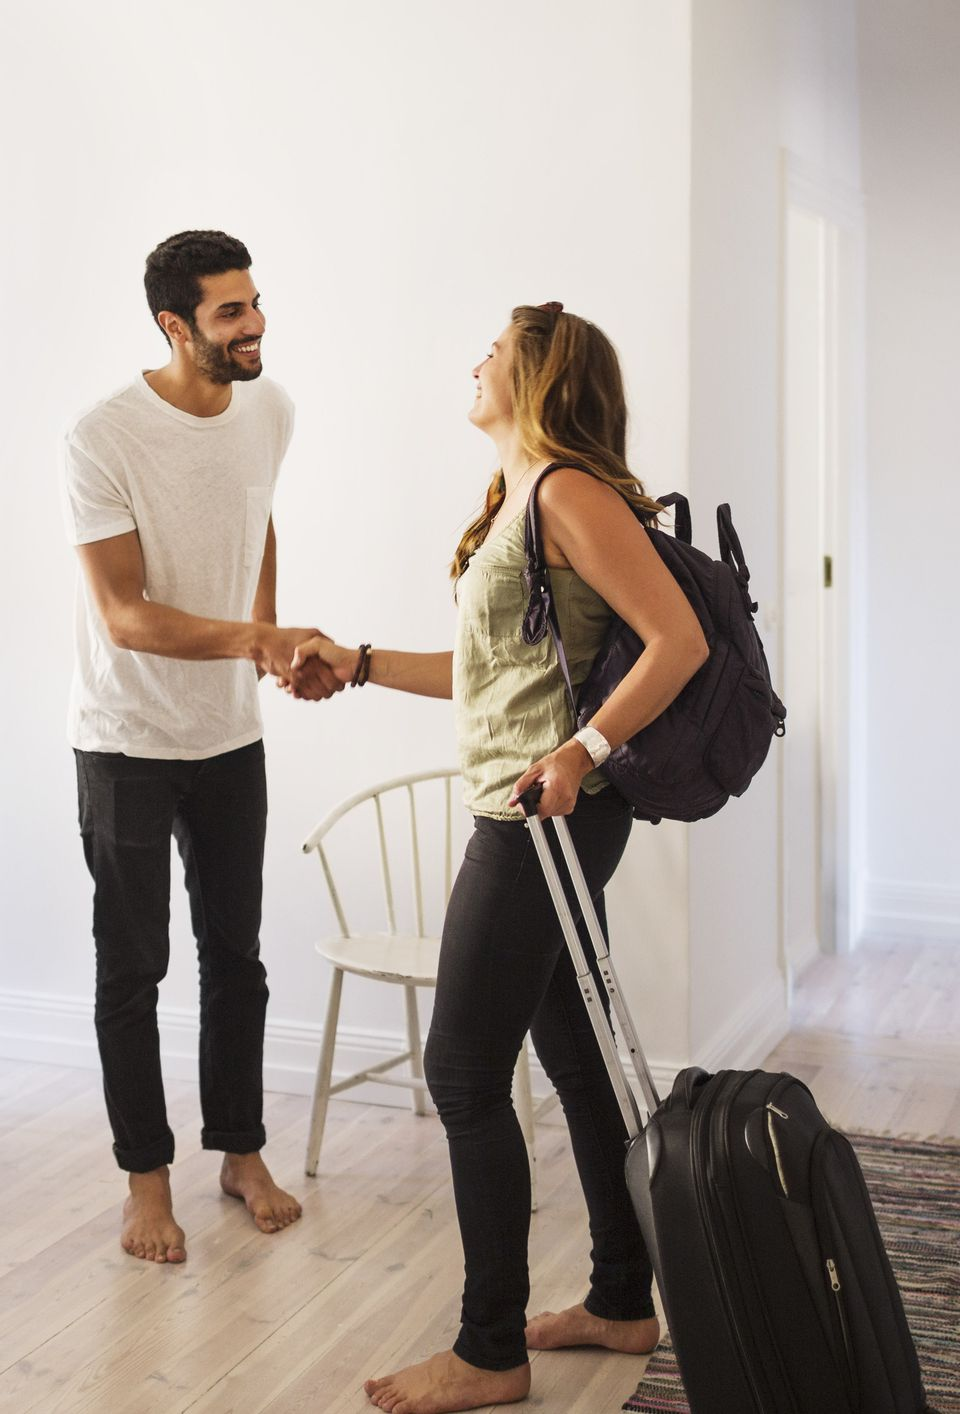 Couchsurfing host greets a guest with luggage